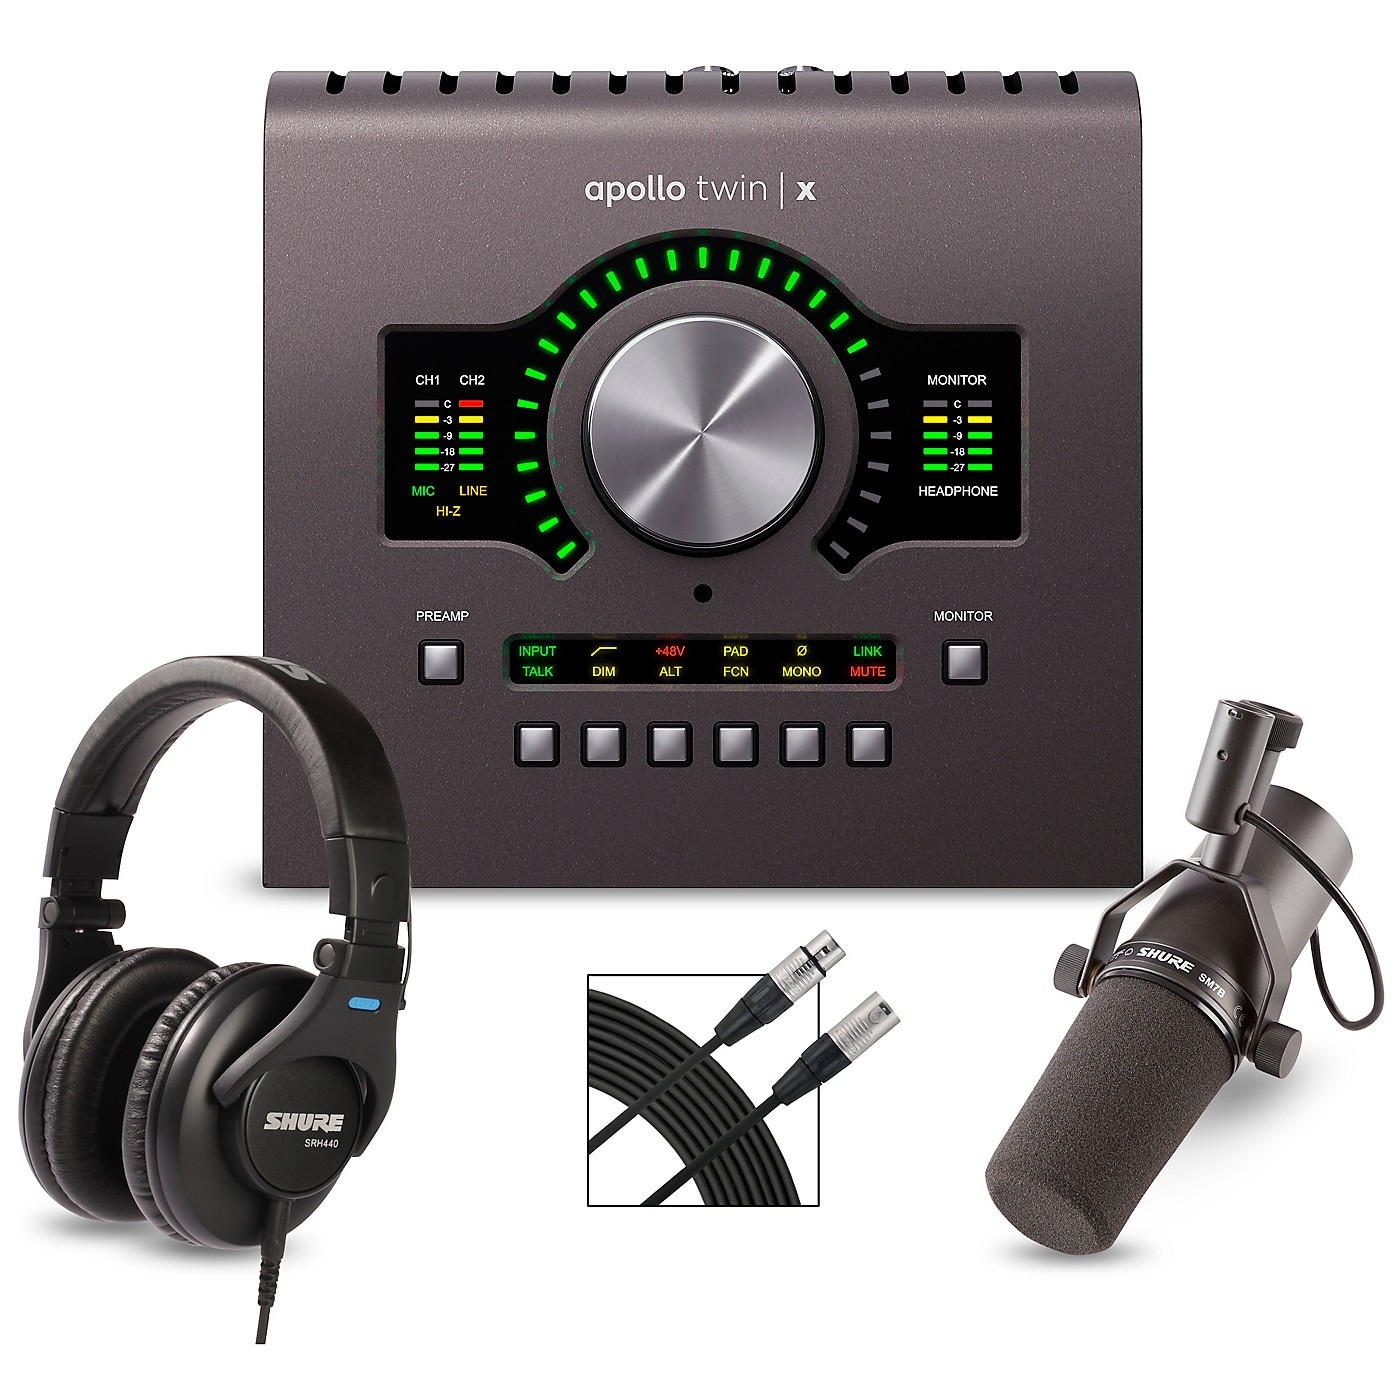 Universal Audio Apollo Twin X DUO Heritage Edition Interface with Shure SM7B, SRH 440 and Mic Cable thumbnail